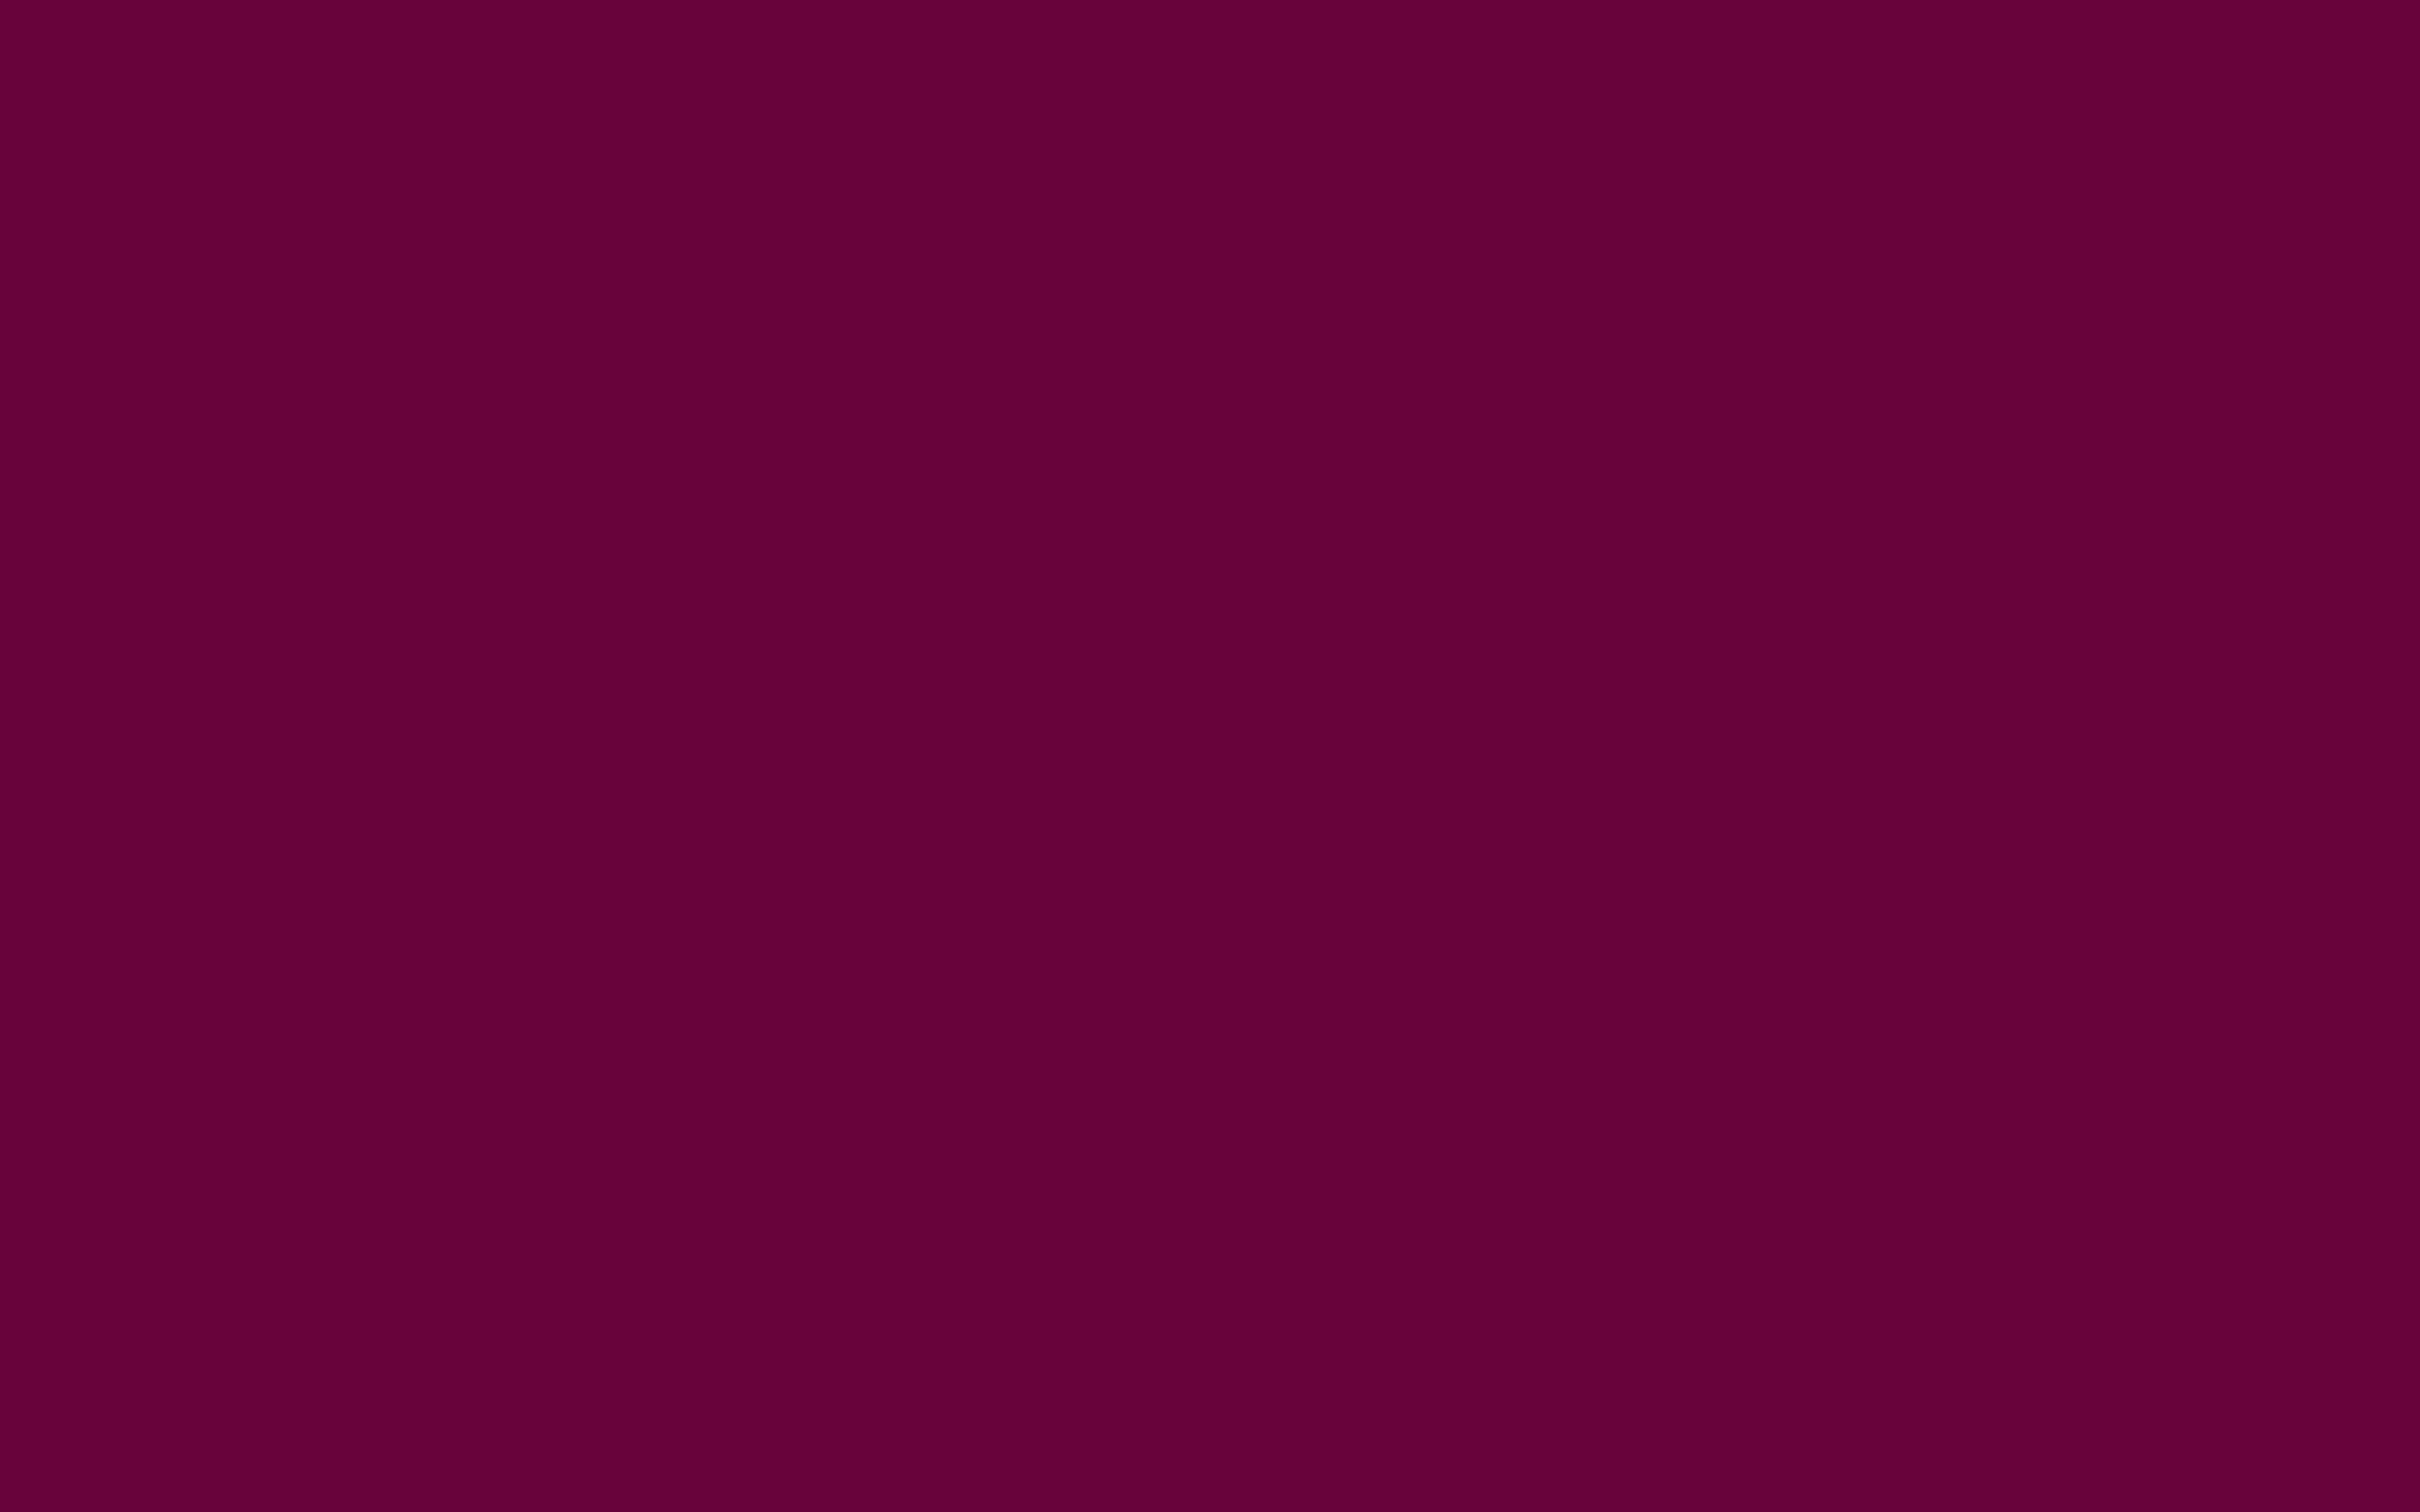 2560x1600 Tyrian Purple Solid Color Background